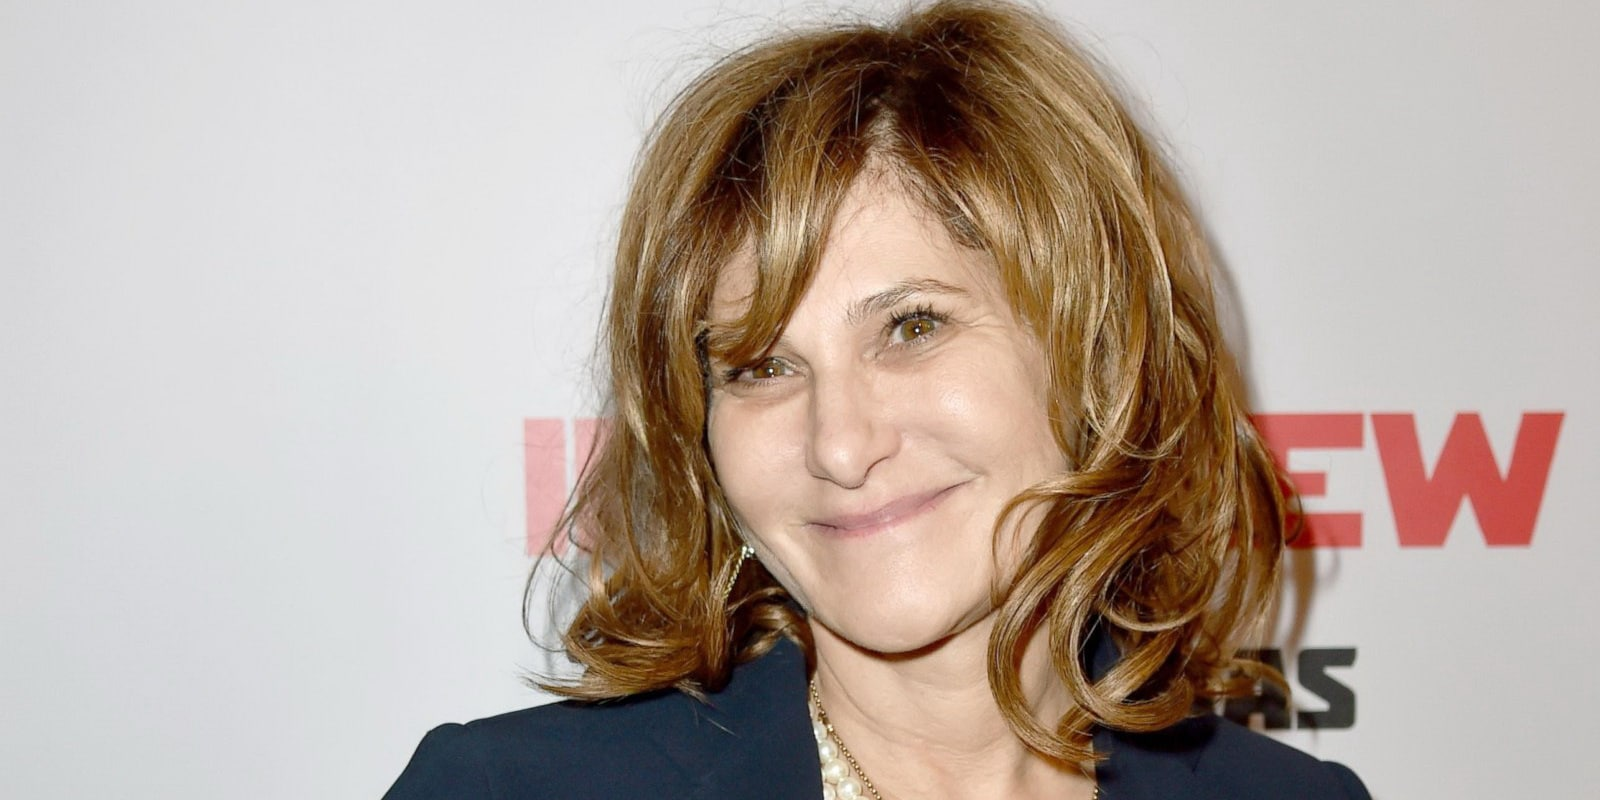 How rich is Amy Pascal? Celebrity Net Worth